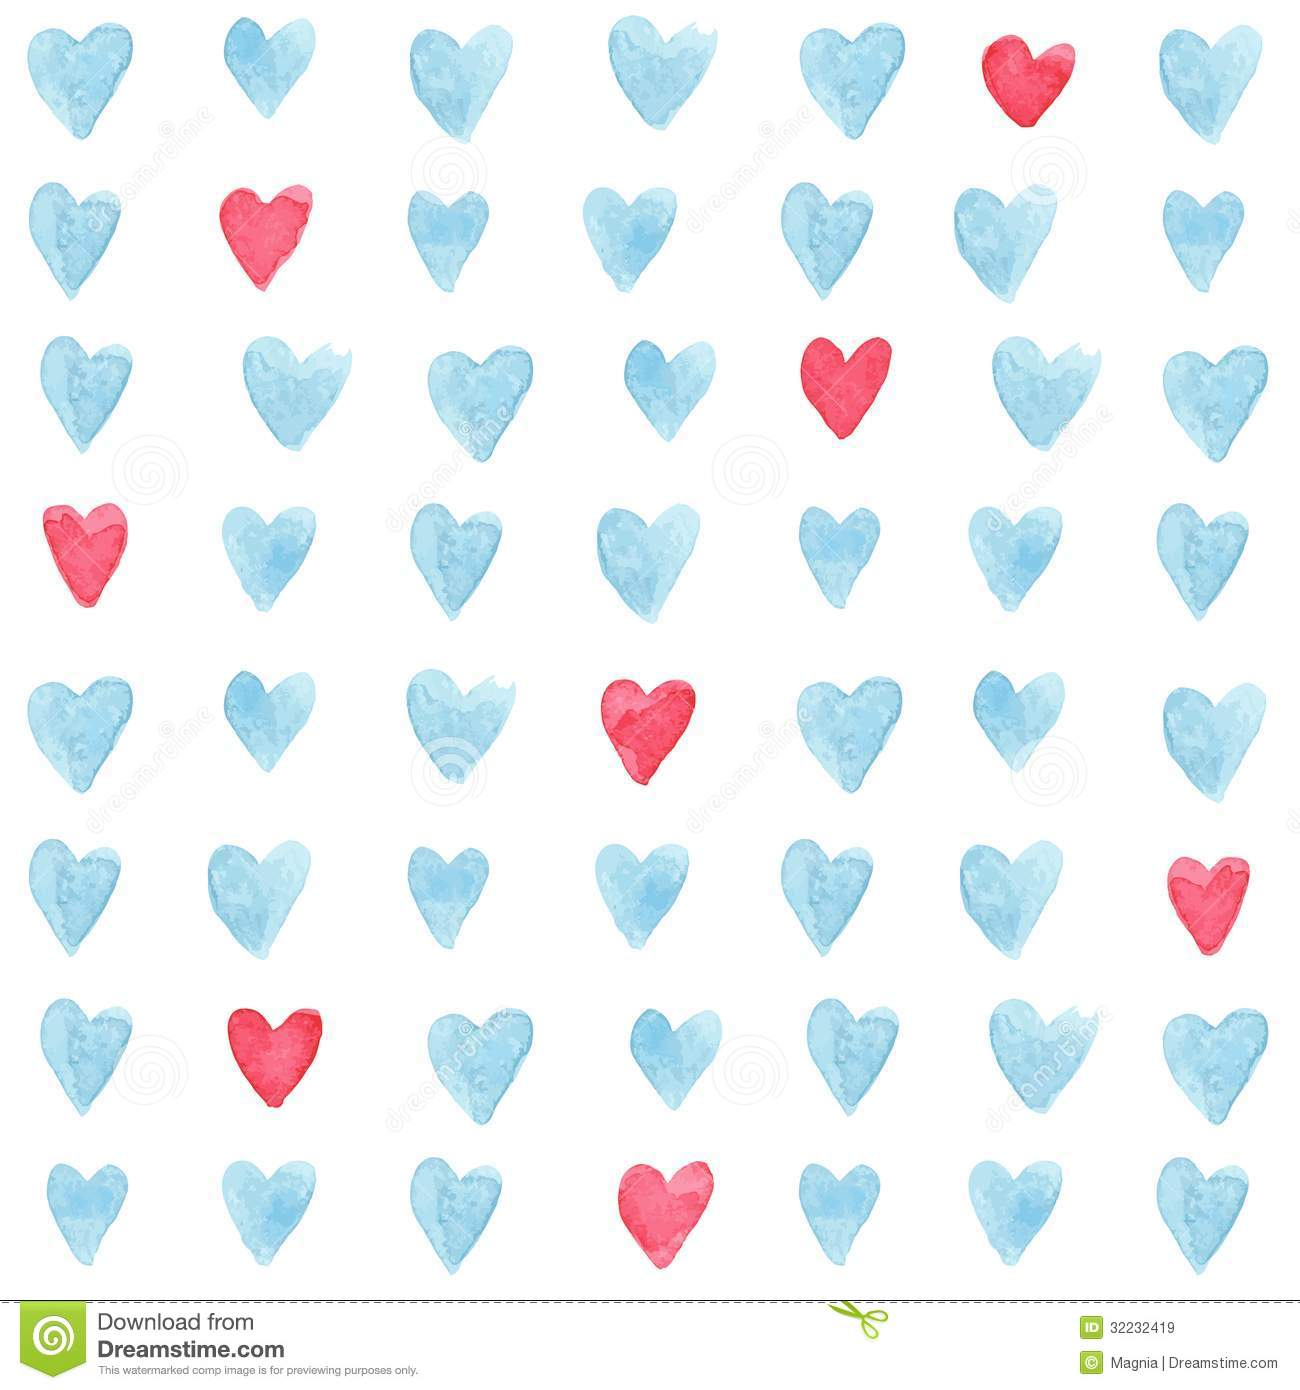 Stylish pattern with watercolor hearts. Vector illustration.